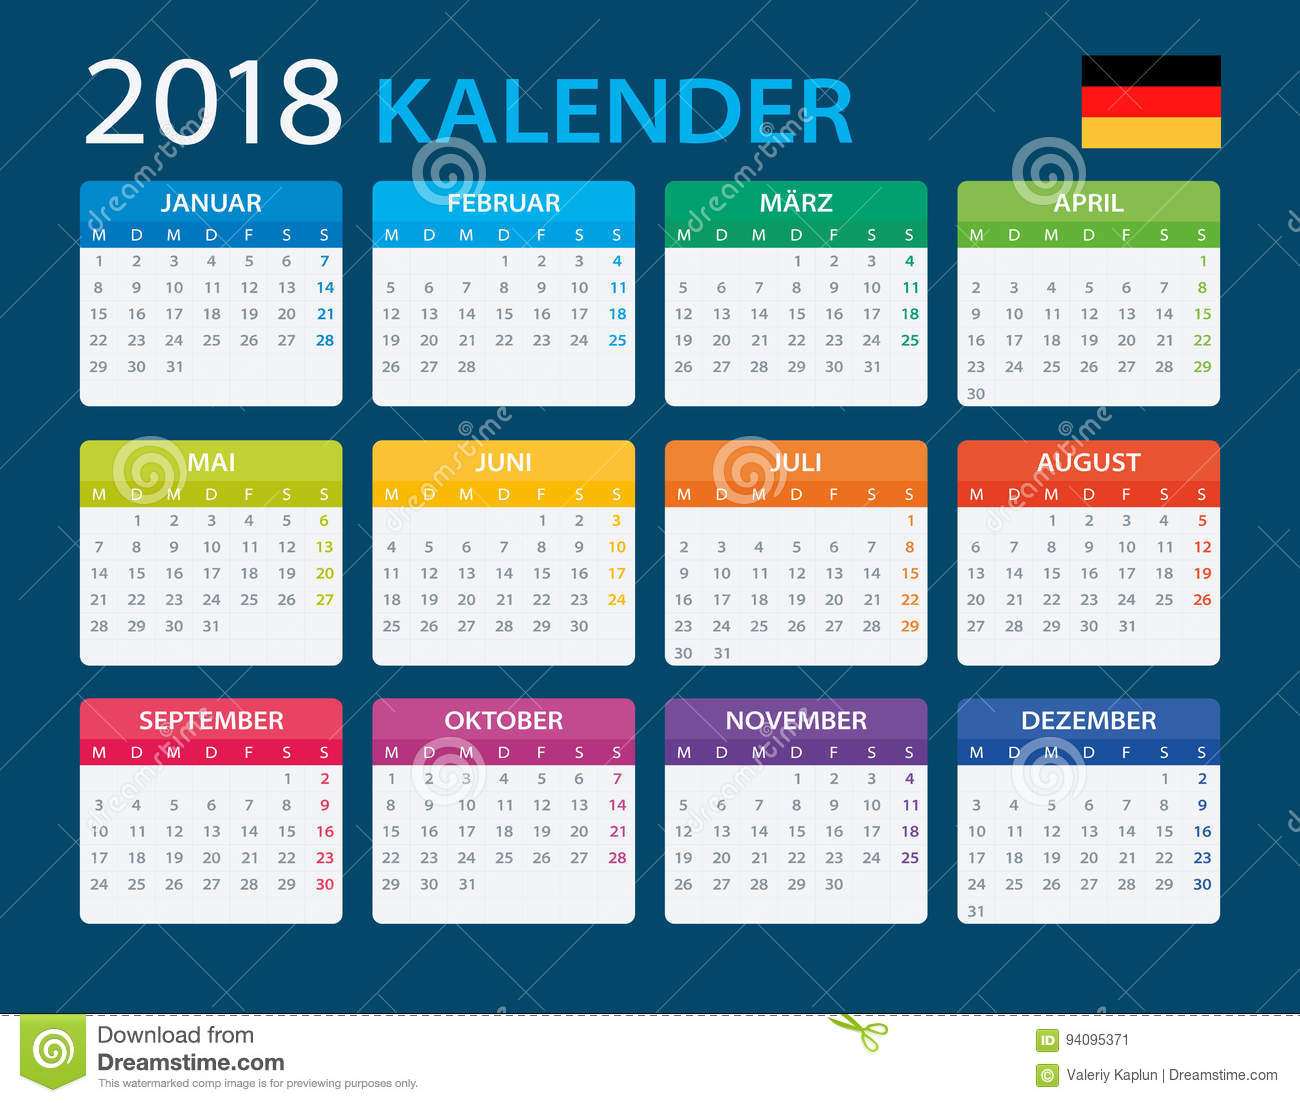 calendar 2018 german version